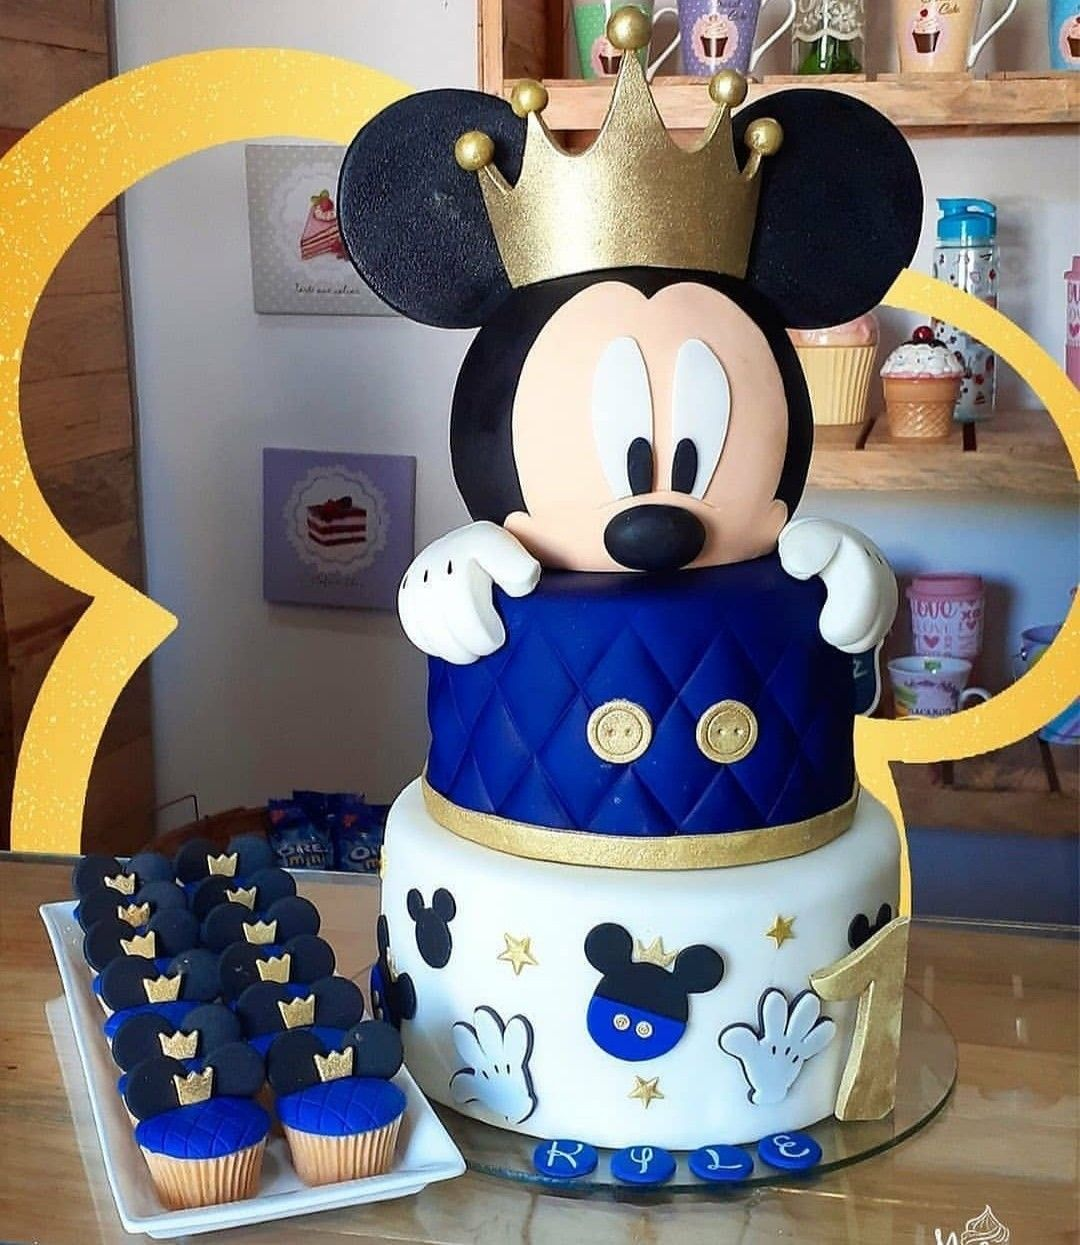 Pin By Paty Disyan On Bolos Baby Mickey Mouse Cake Mickey Mouse Baby Shower Baby Birthday Cakes